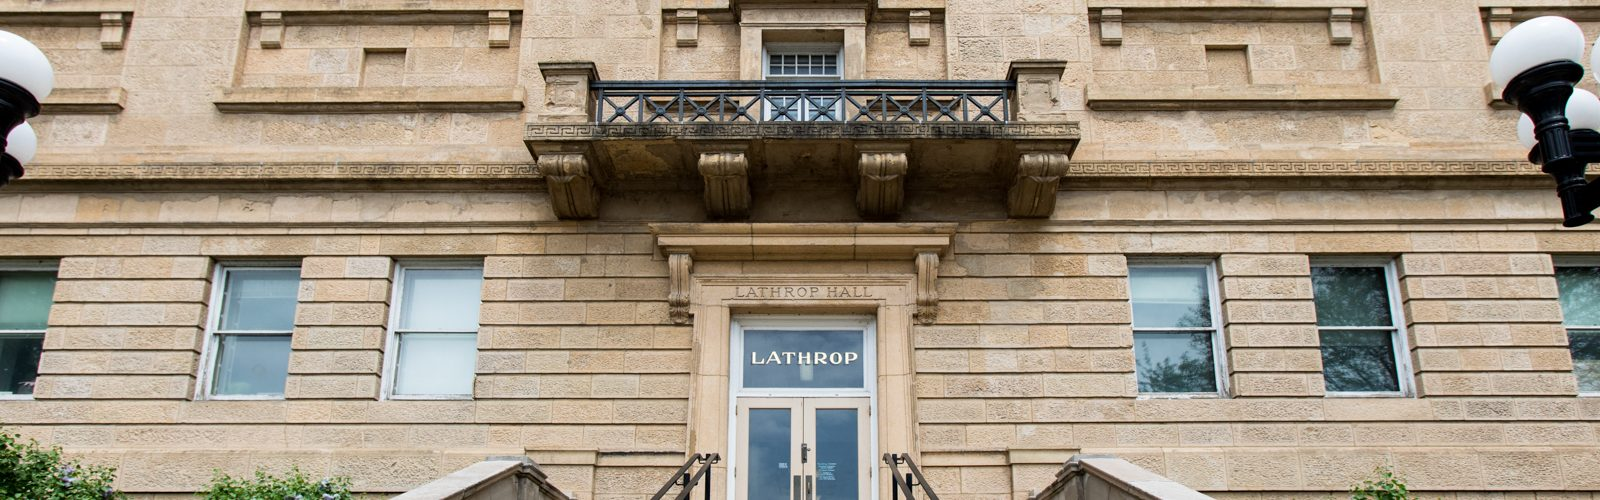 front entrance of lathrop hall